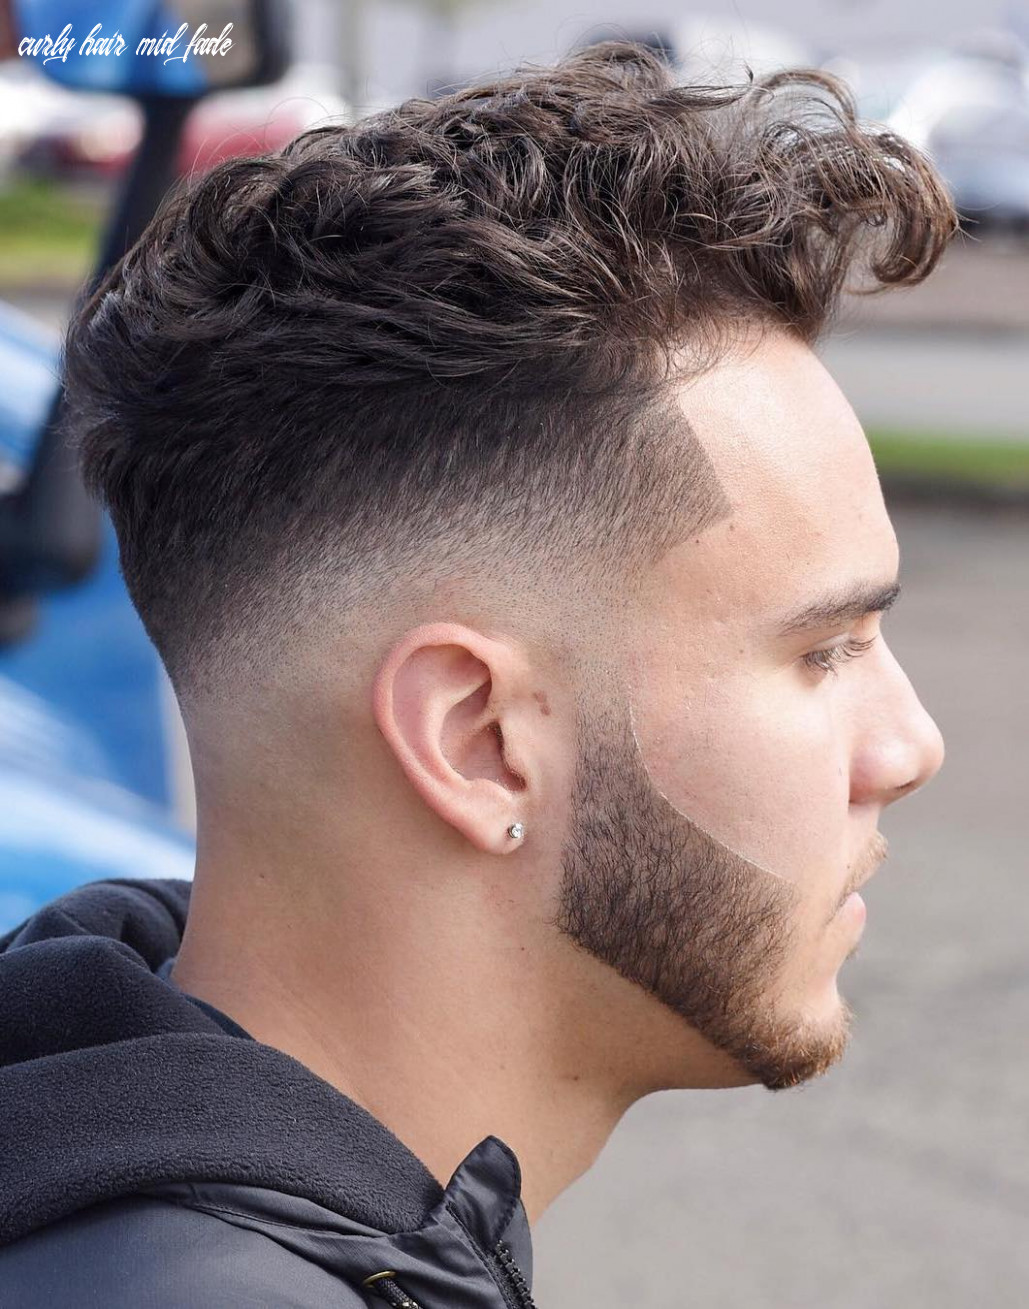 12 the most fashionable mid fade haircuts for men curly hair mid fade